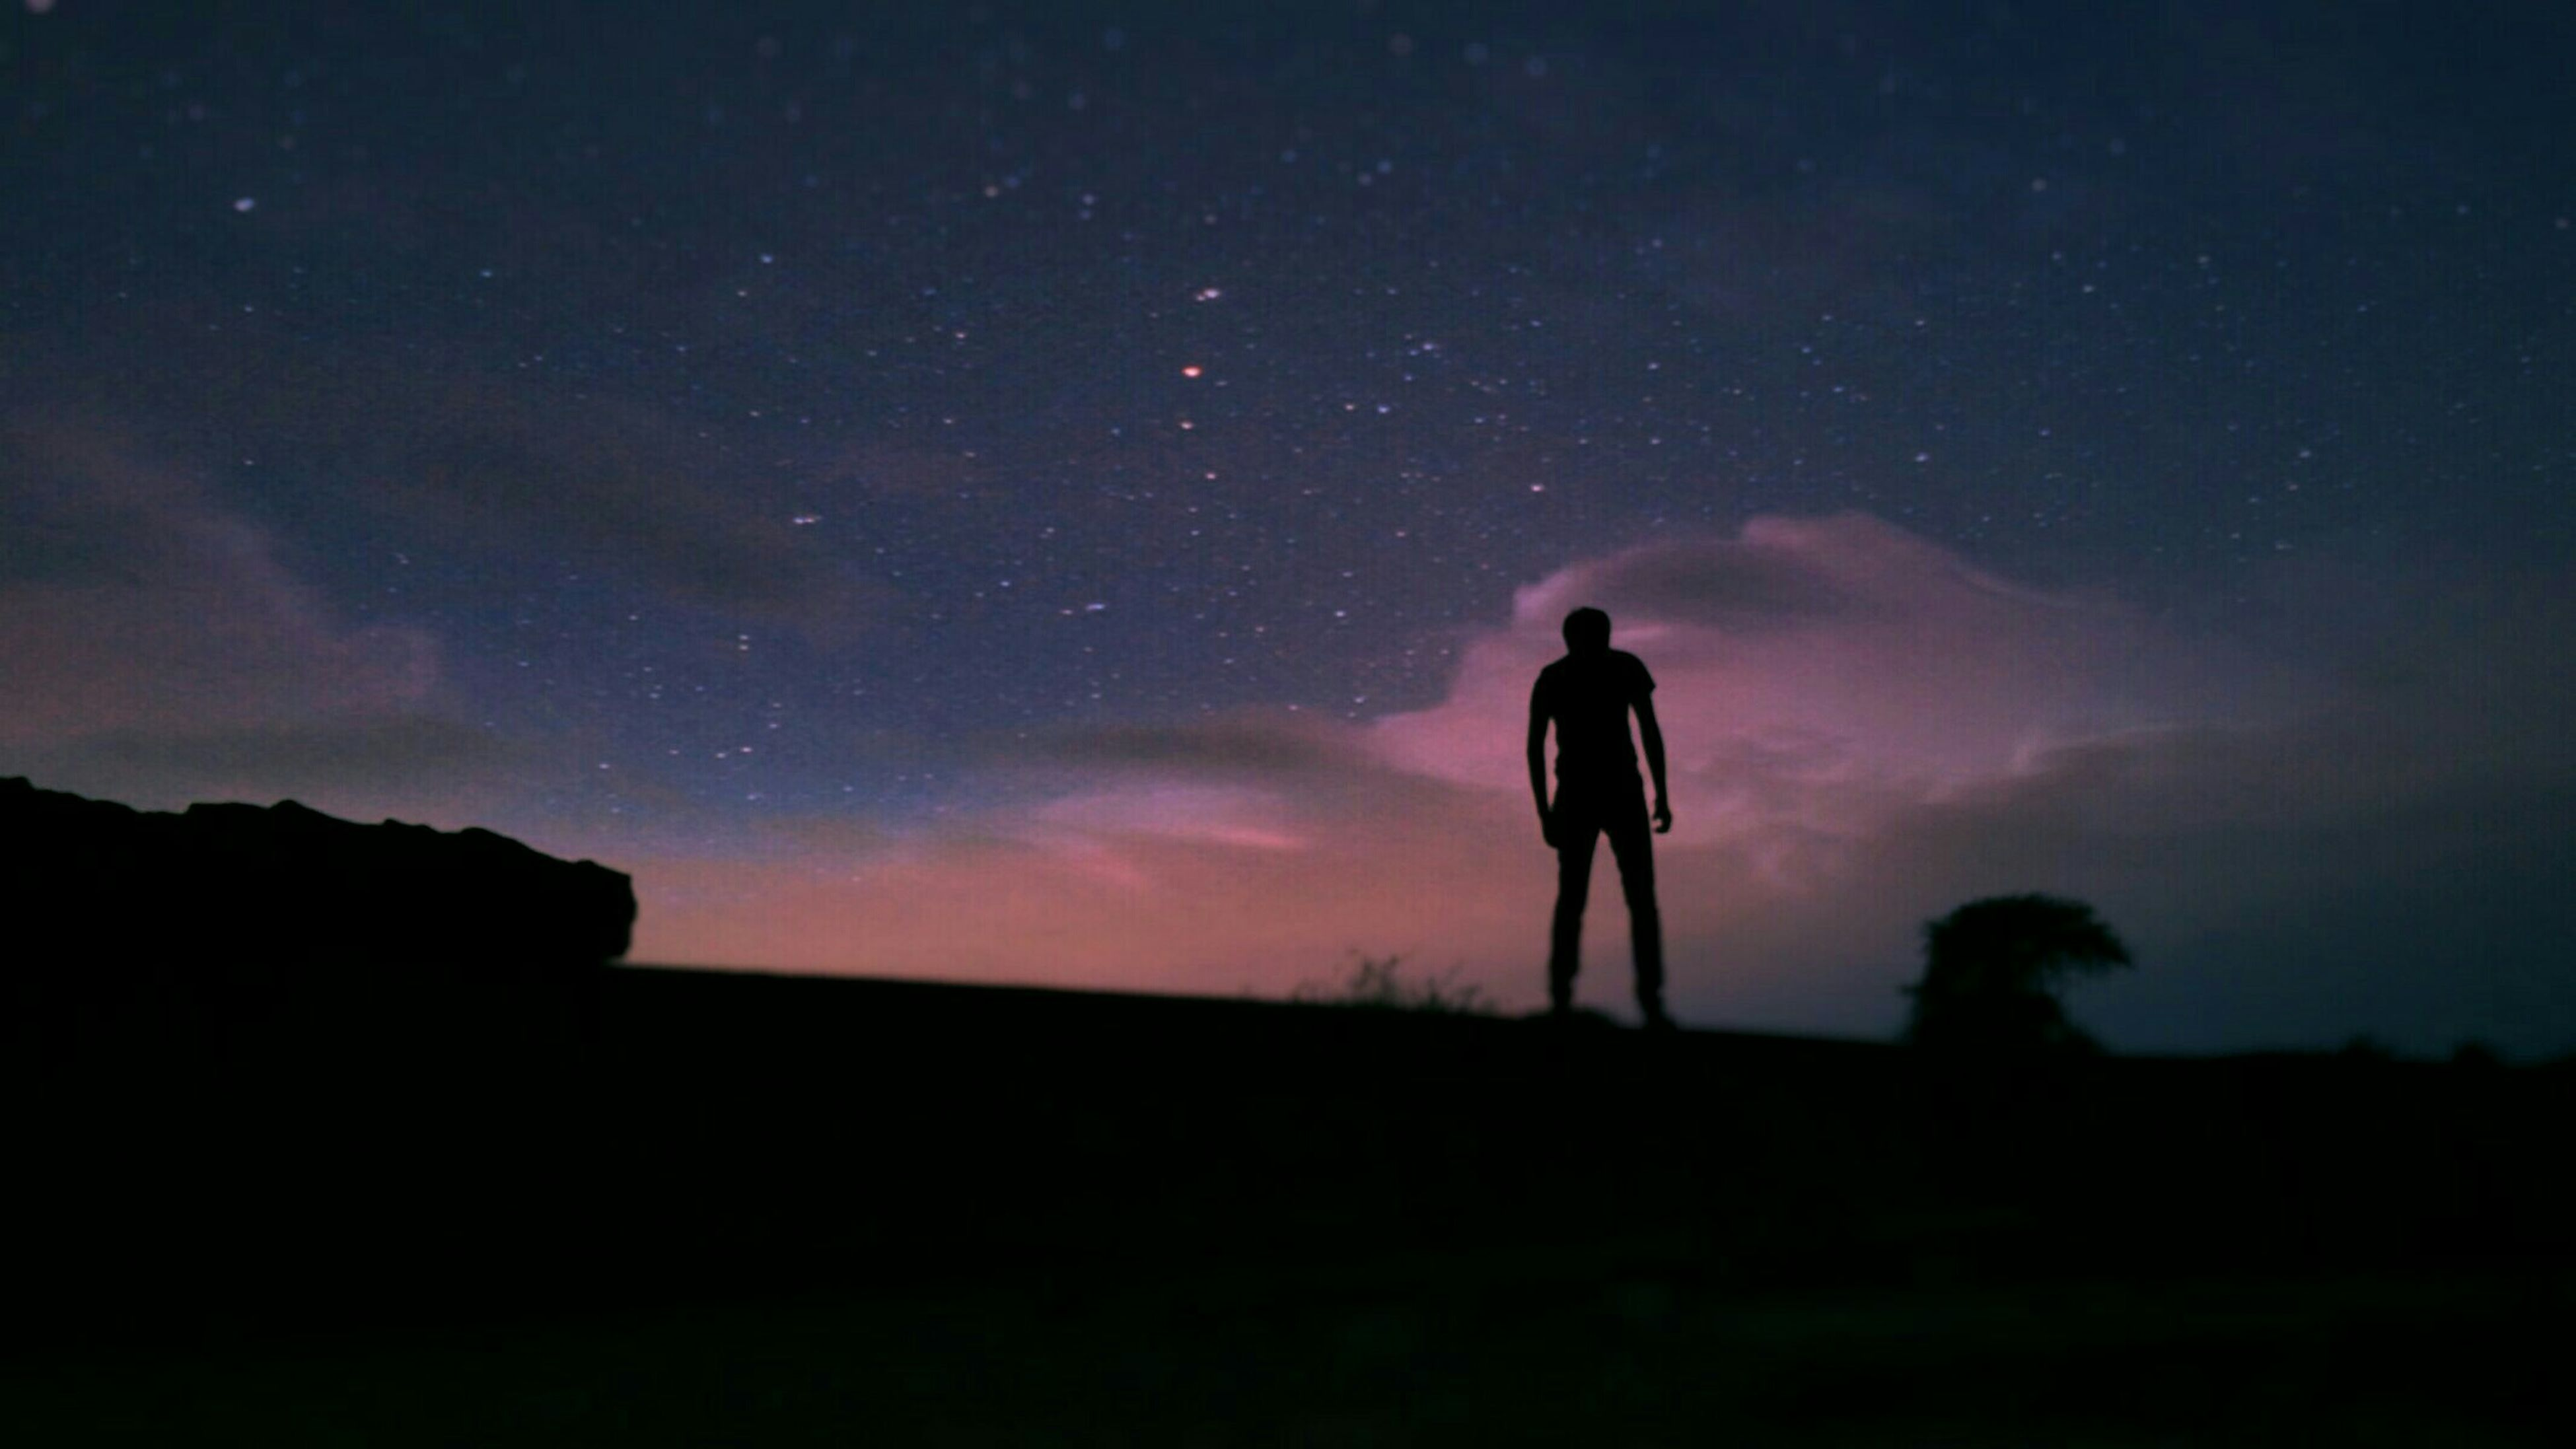 silhouette, sky, standing, lifestyles, men, leisure activity, scenics, tranquility, tranquil scene, rear view, beauty in nature, full length, nature, cloud - sky, night, dusk, dark, landscape